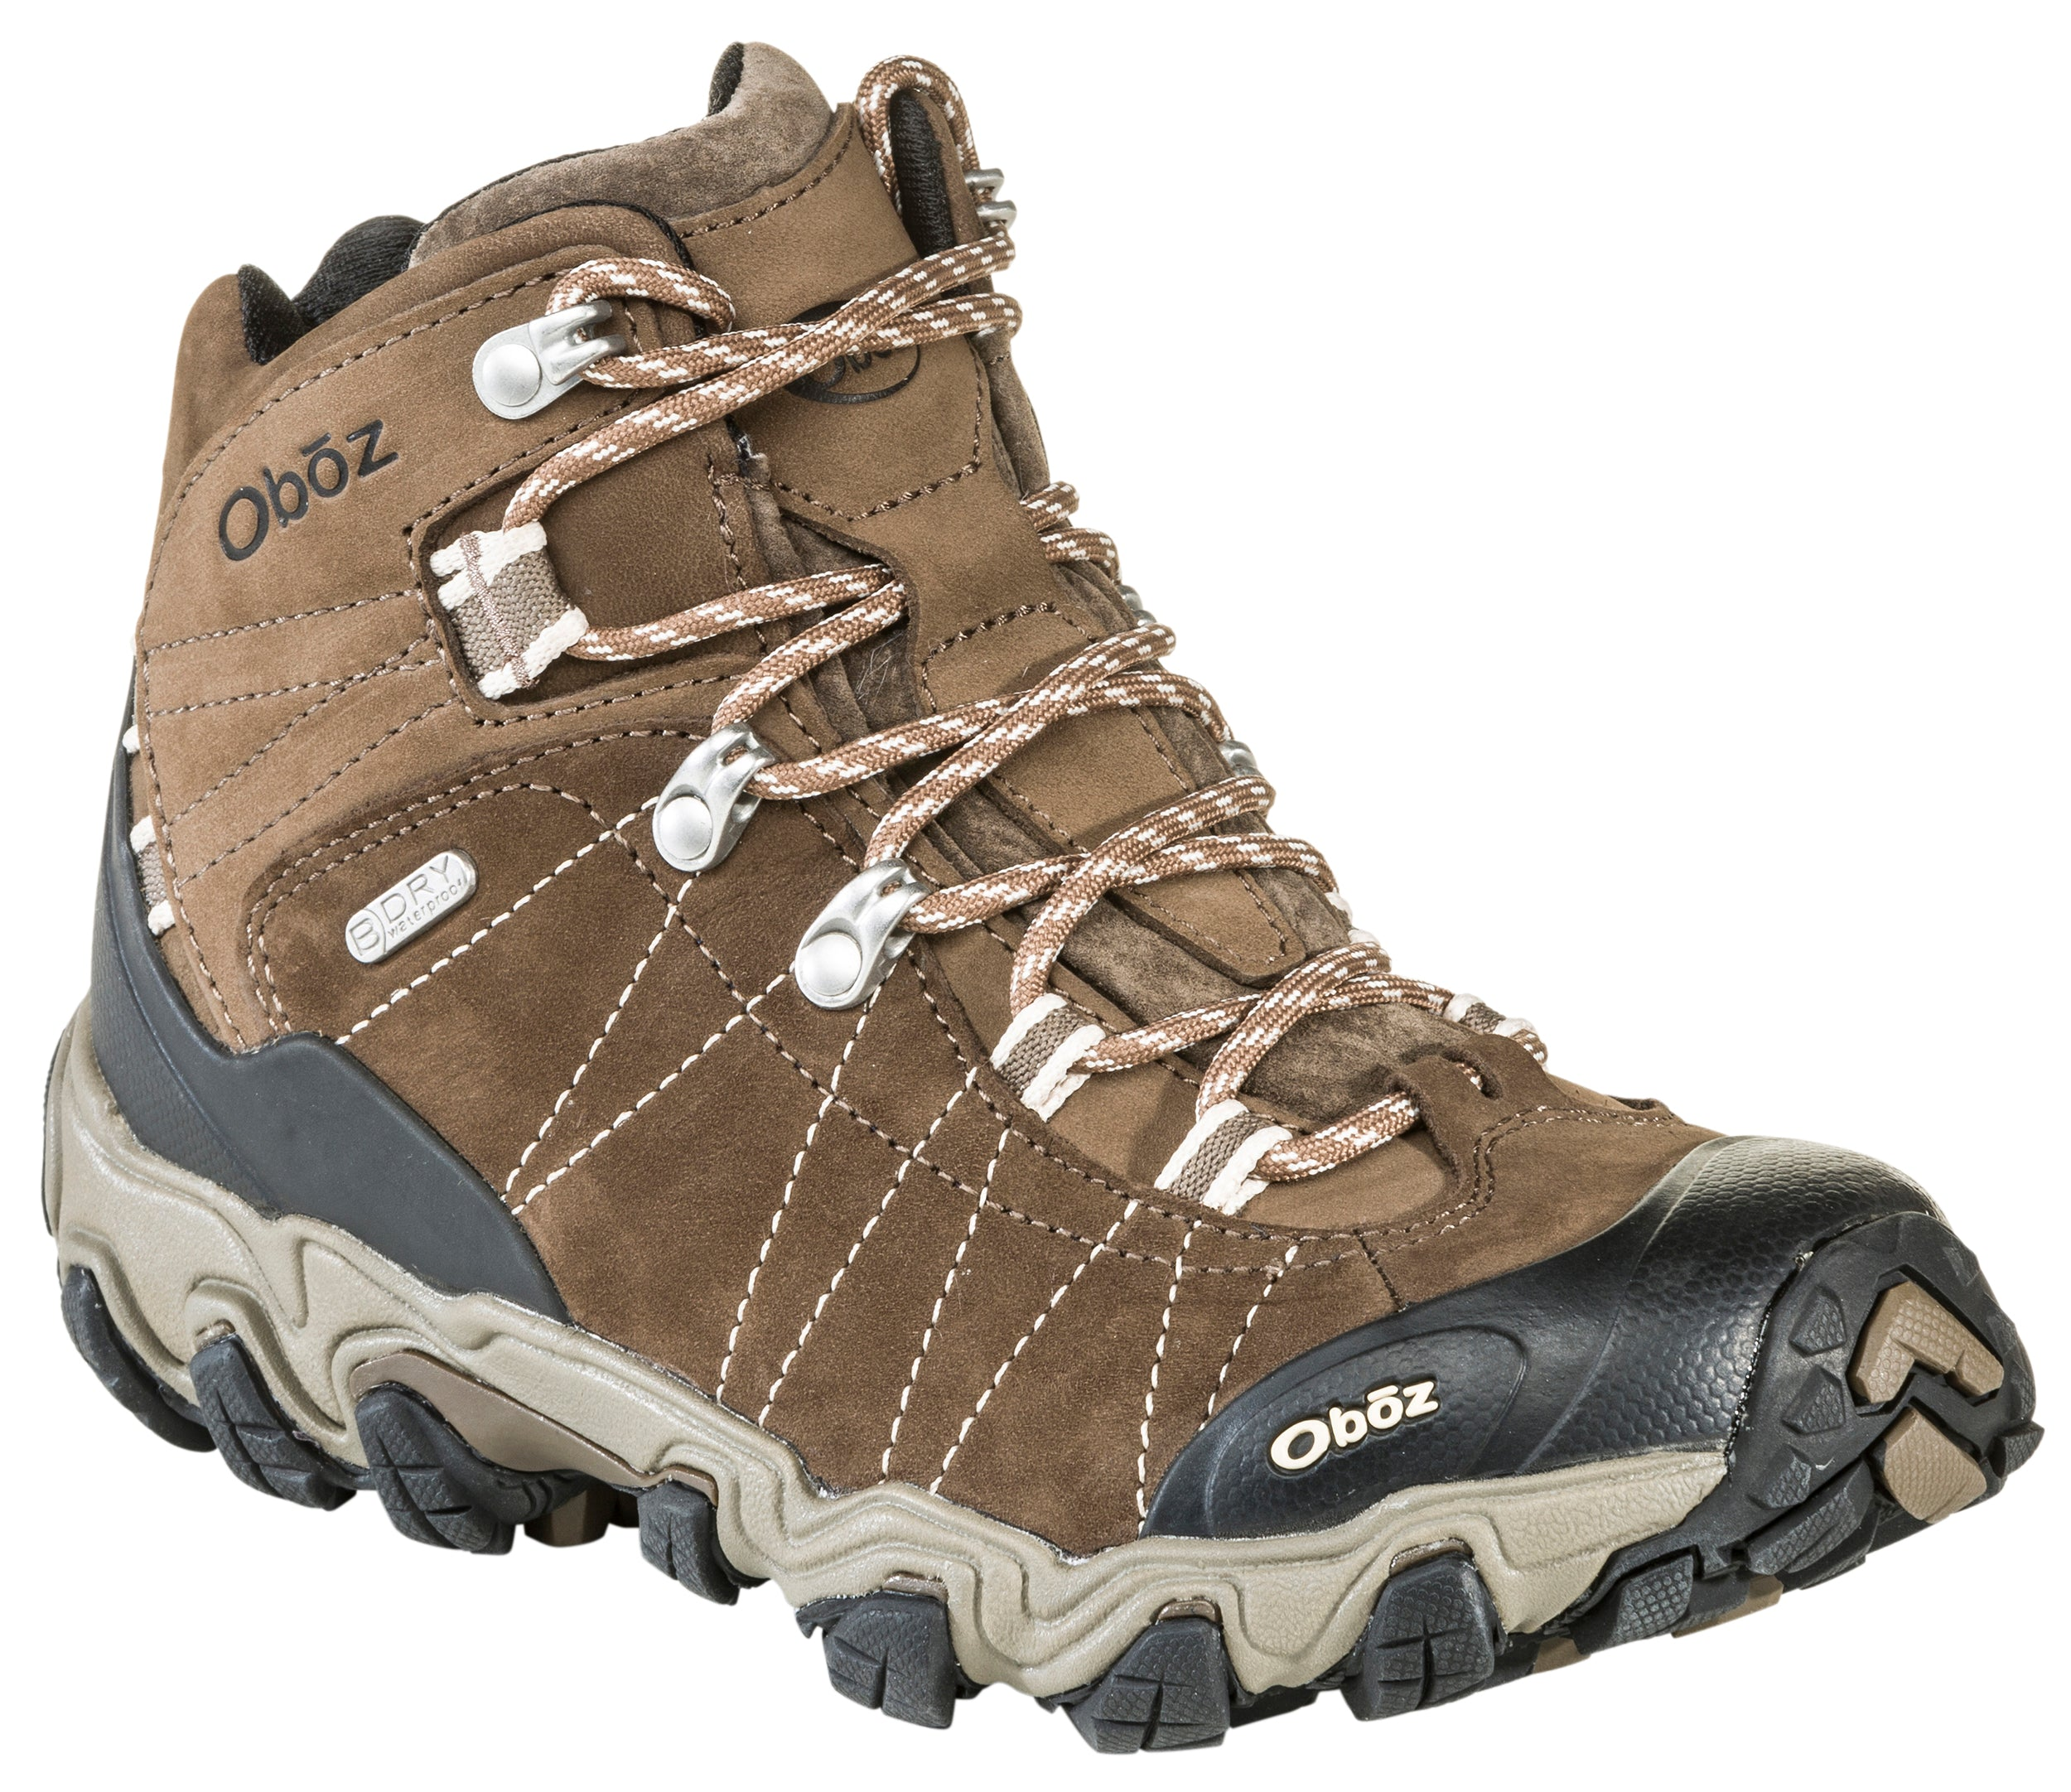 'OBOZ' 22102 - Women's Bridger MID WP Hiker - Walnut